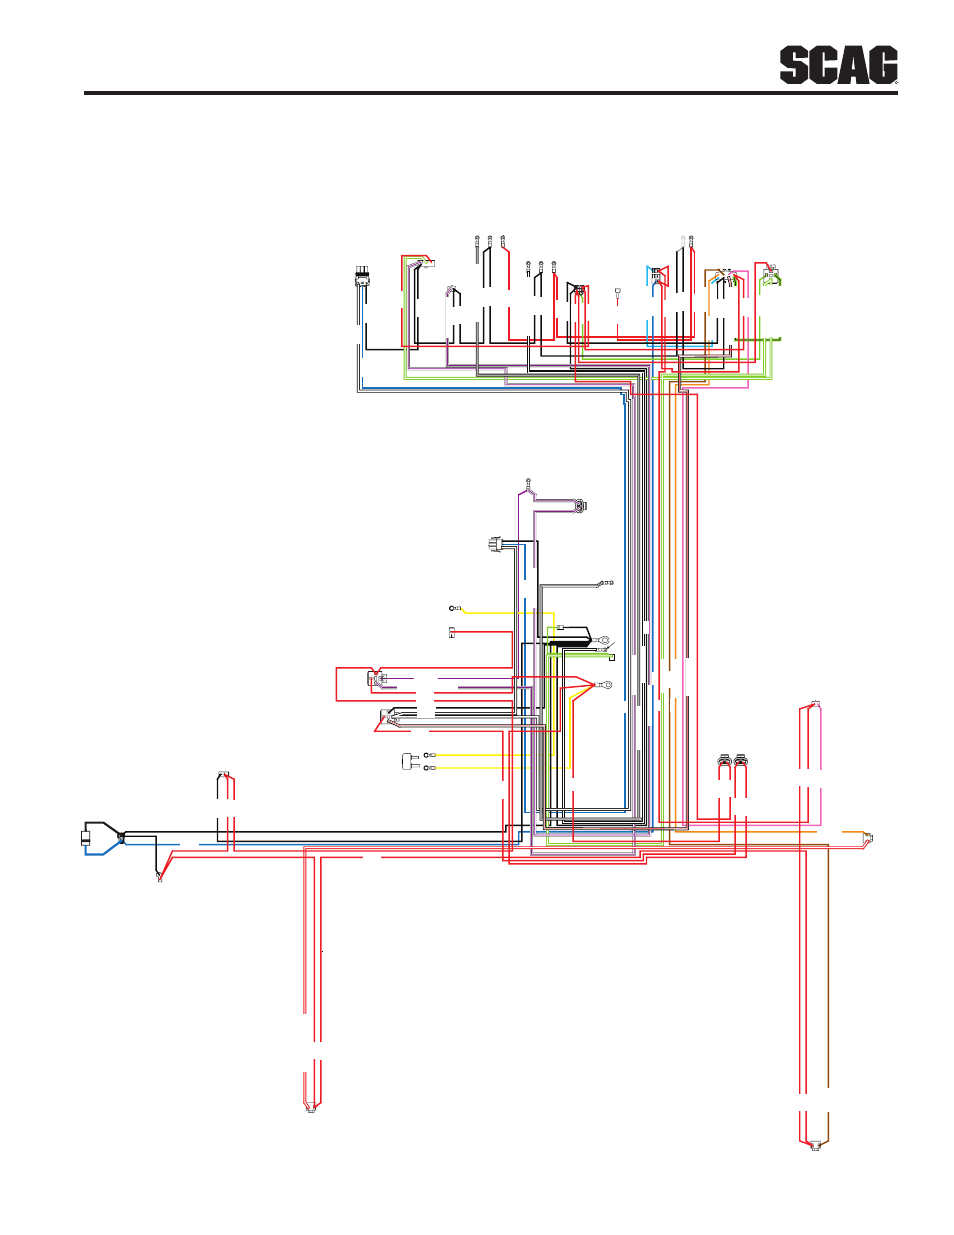 wiring diagram scag query Scag Mower Wiring Diagram scag pto deck wiring diagram wiring